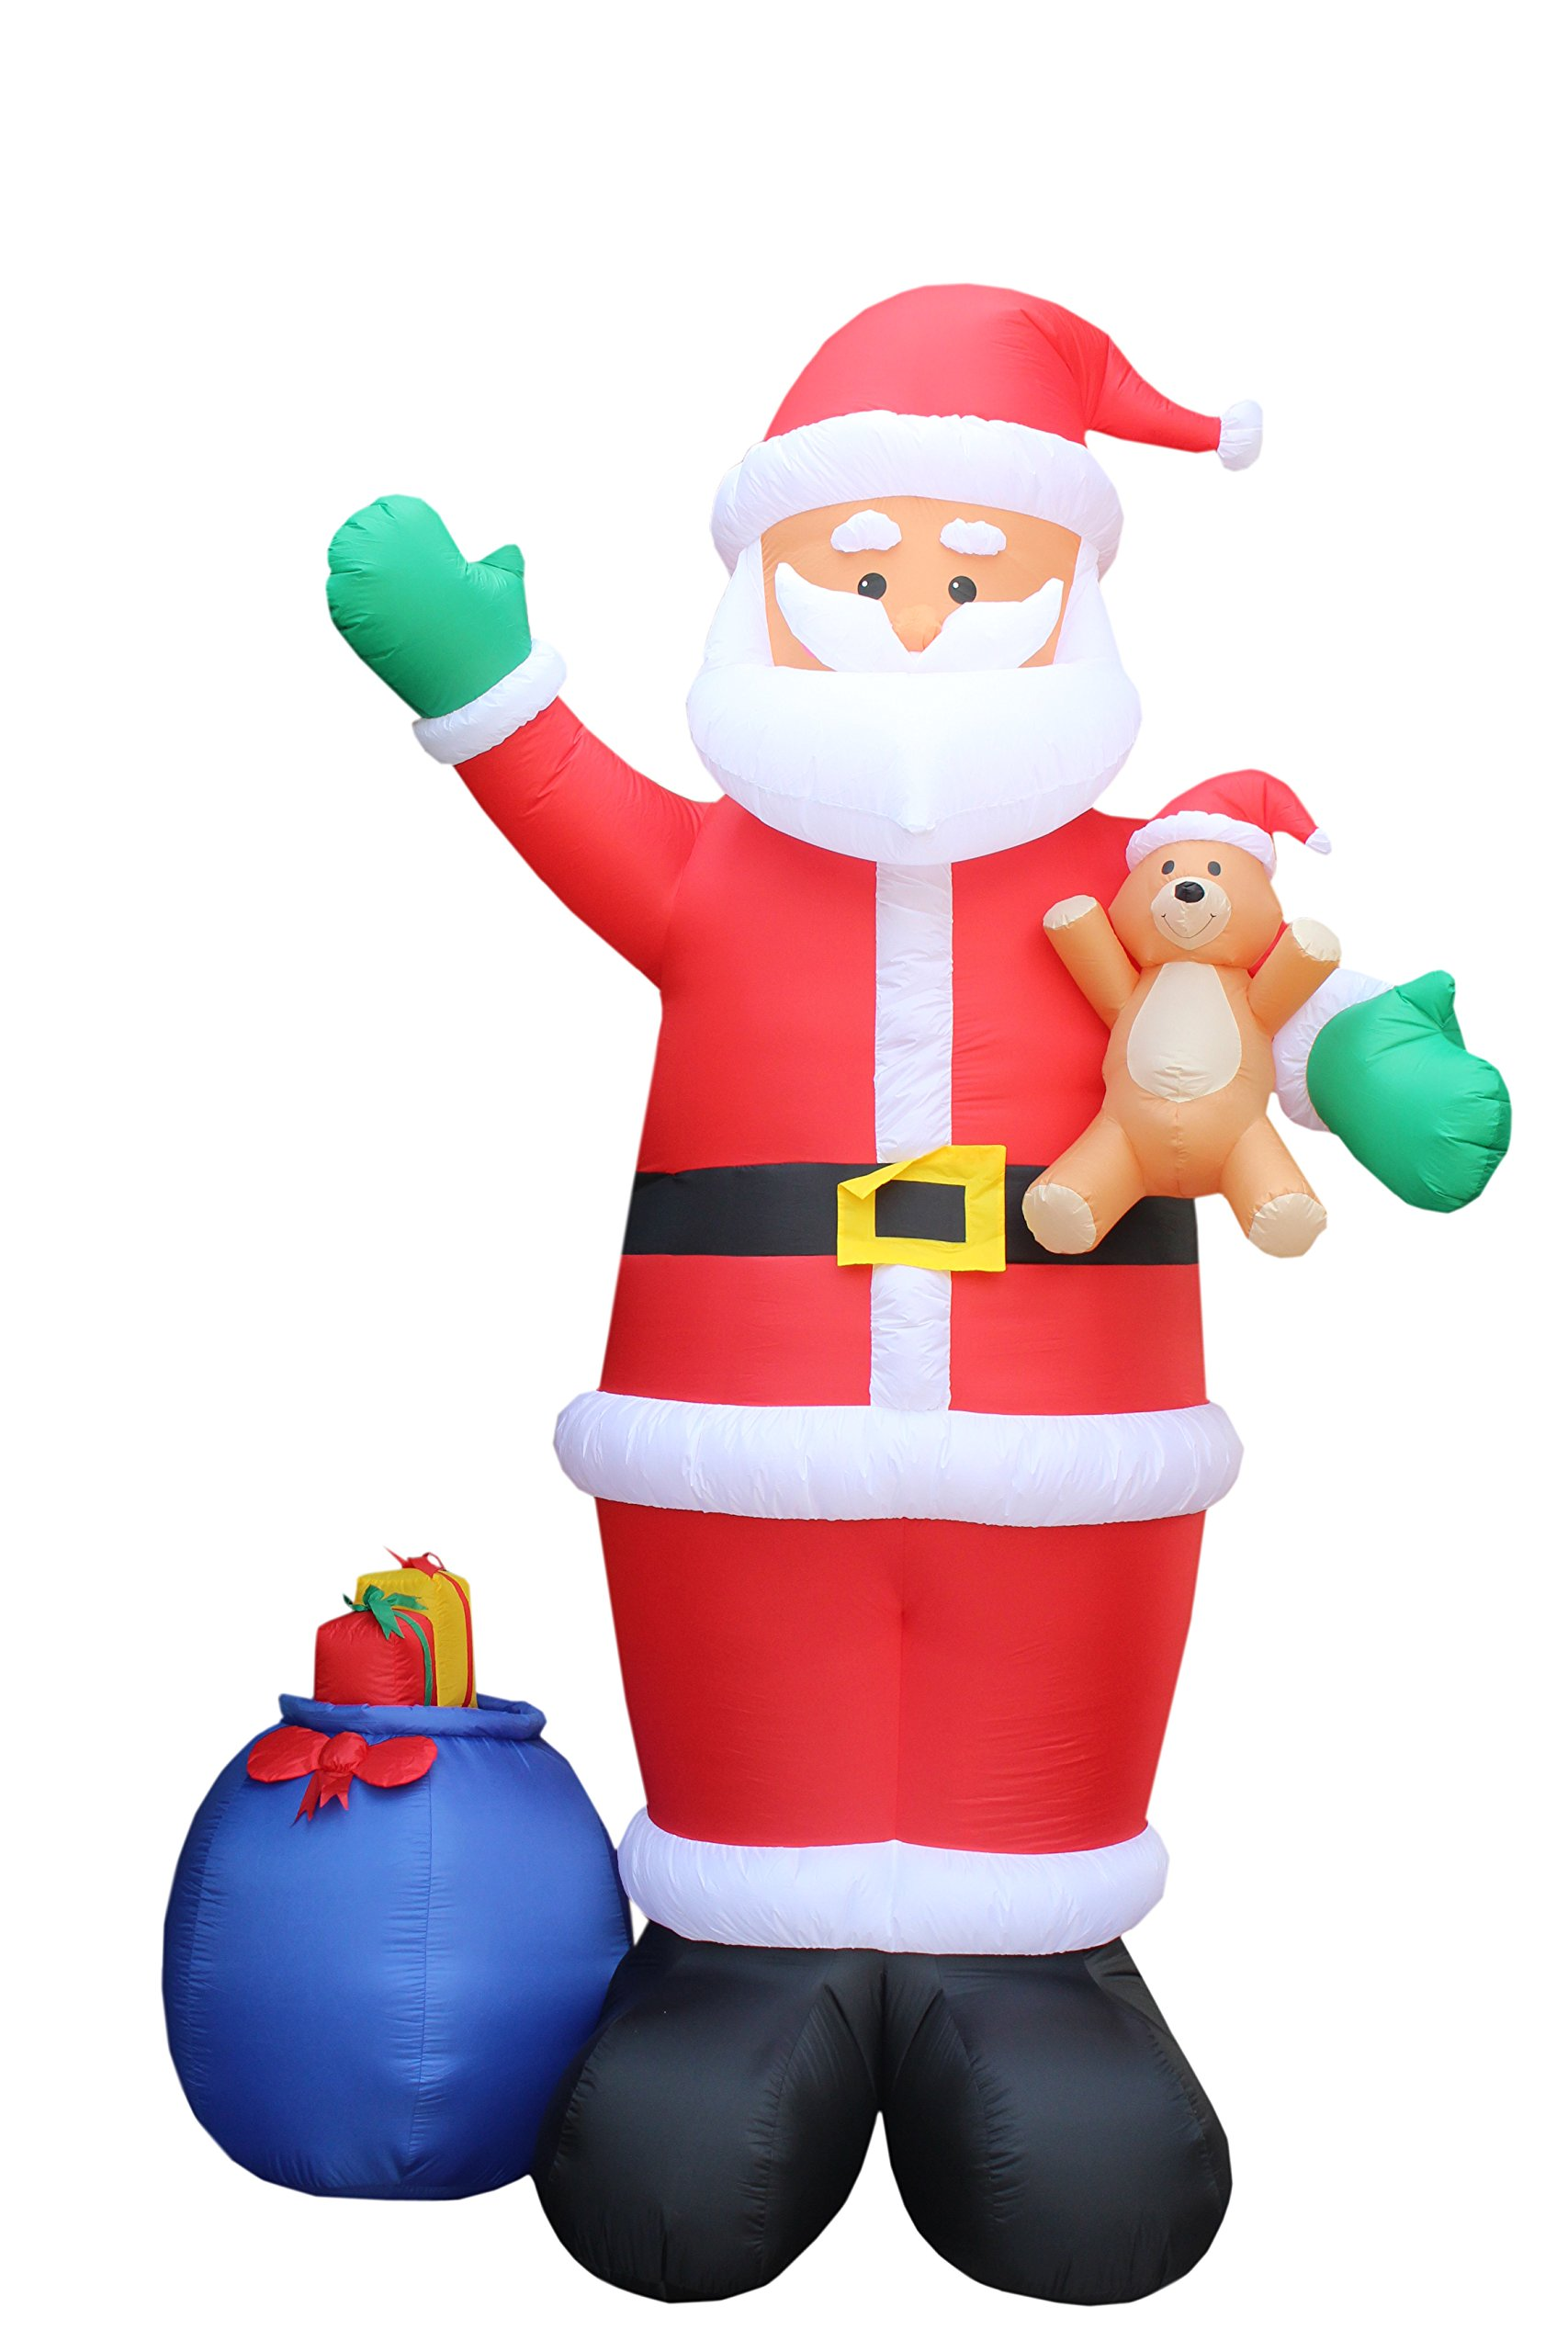 12 Foot Christmas Inflatable Santa Claus with Gift Bag and Bear Yard Garden Decoration by BZB Goods (Image #3)